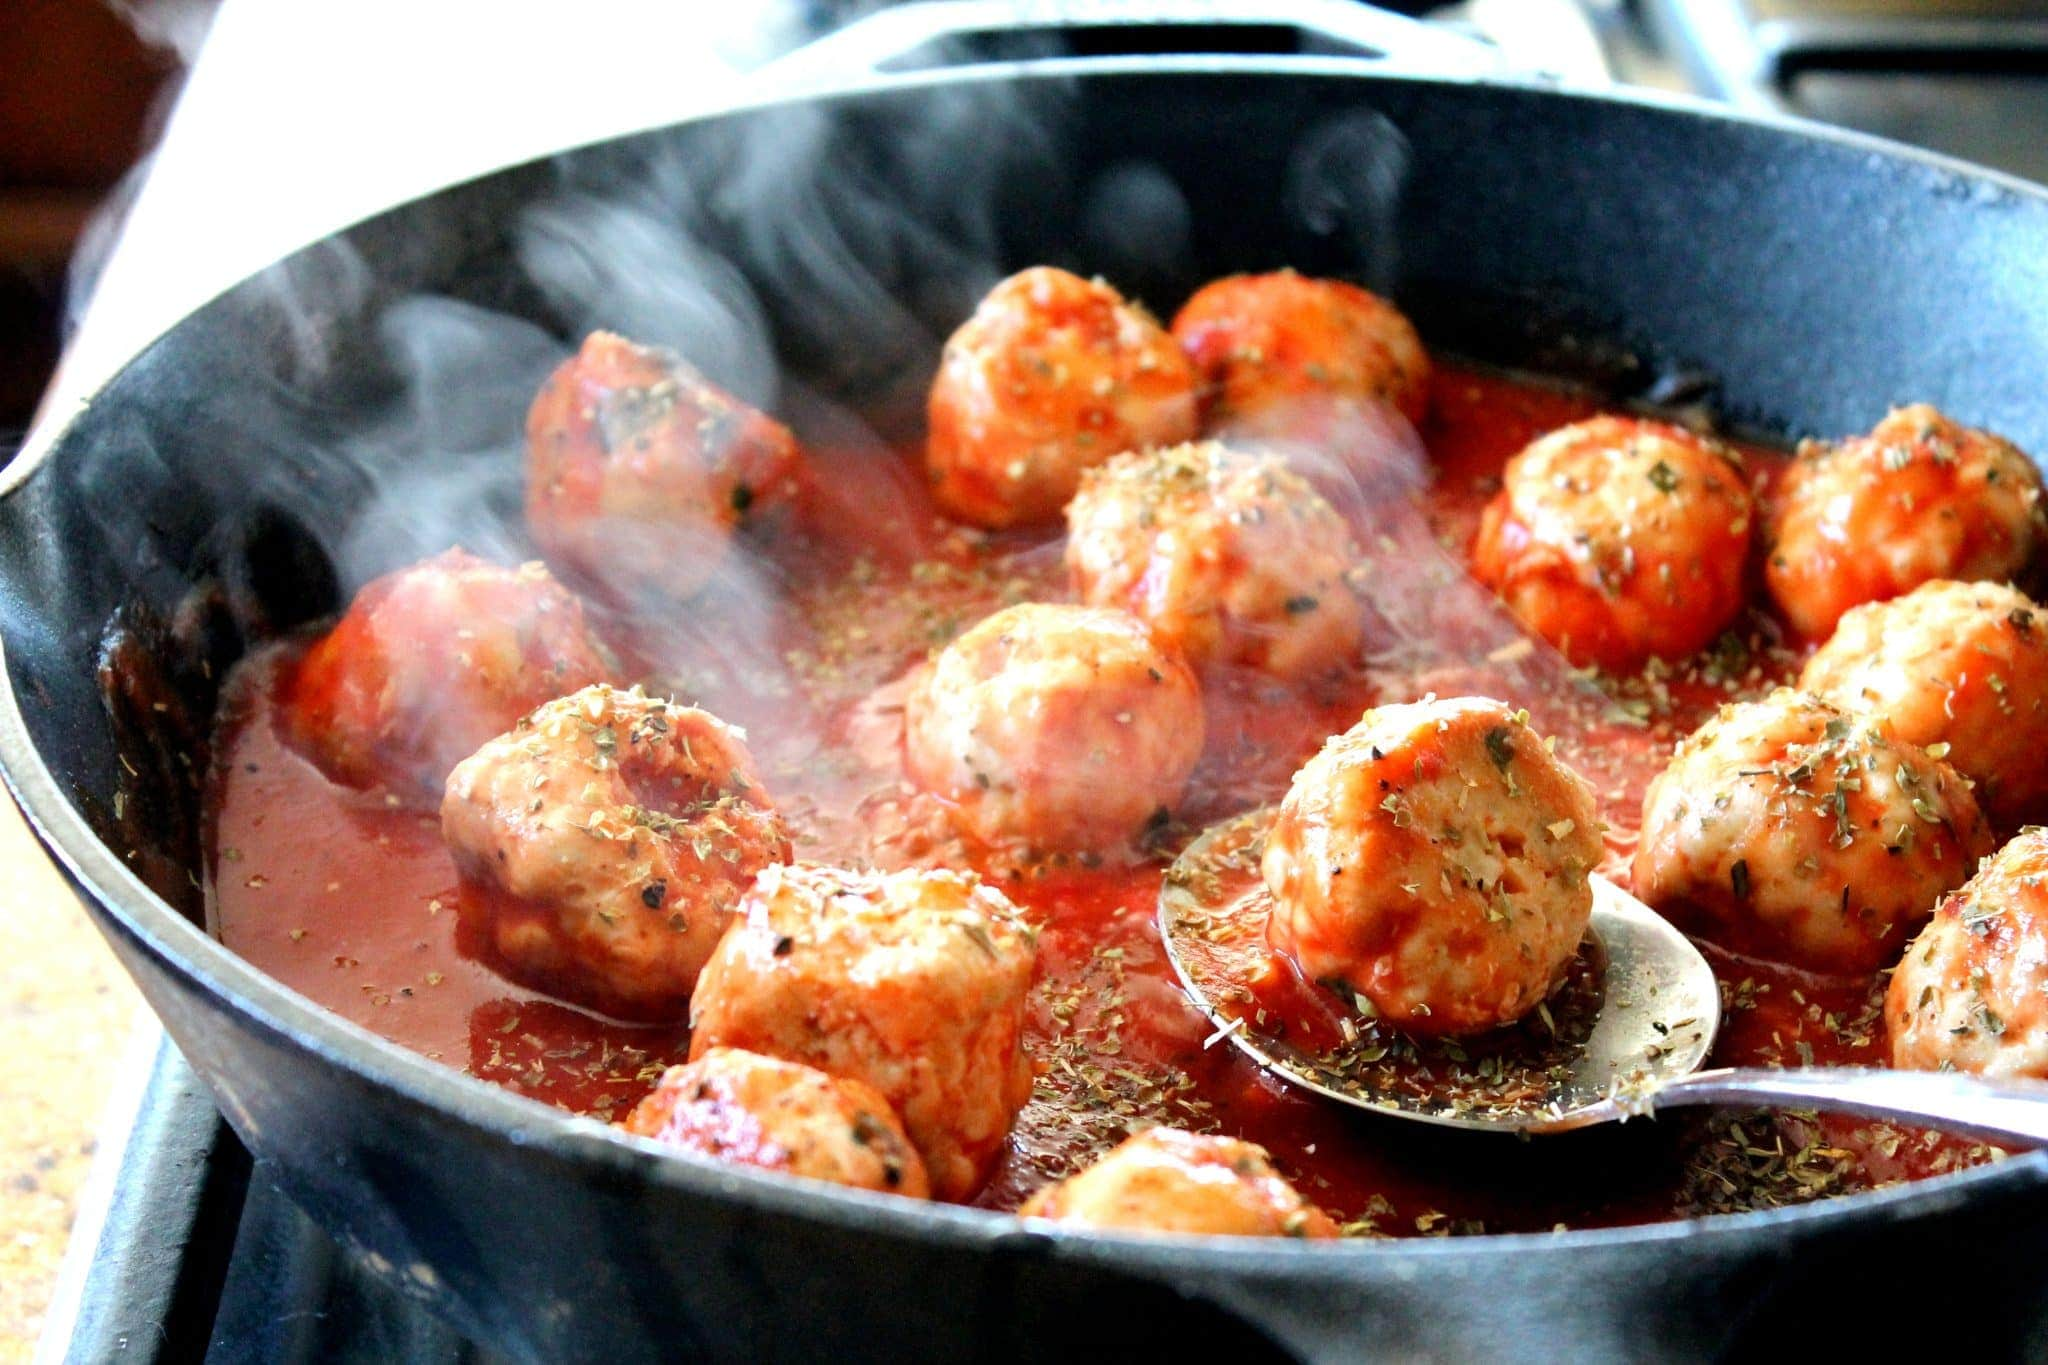 Italian meatballs and sauce are a delicious dish.